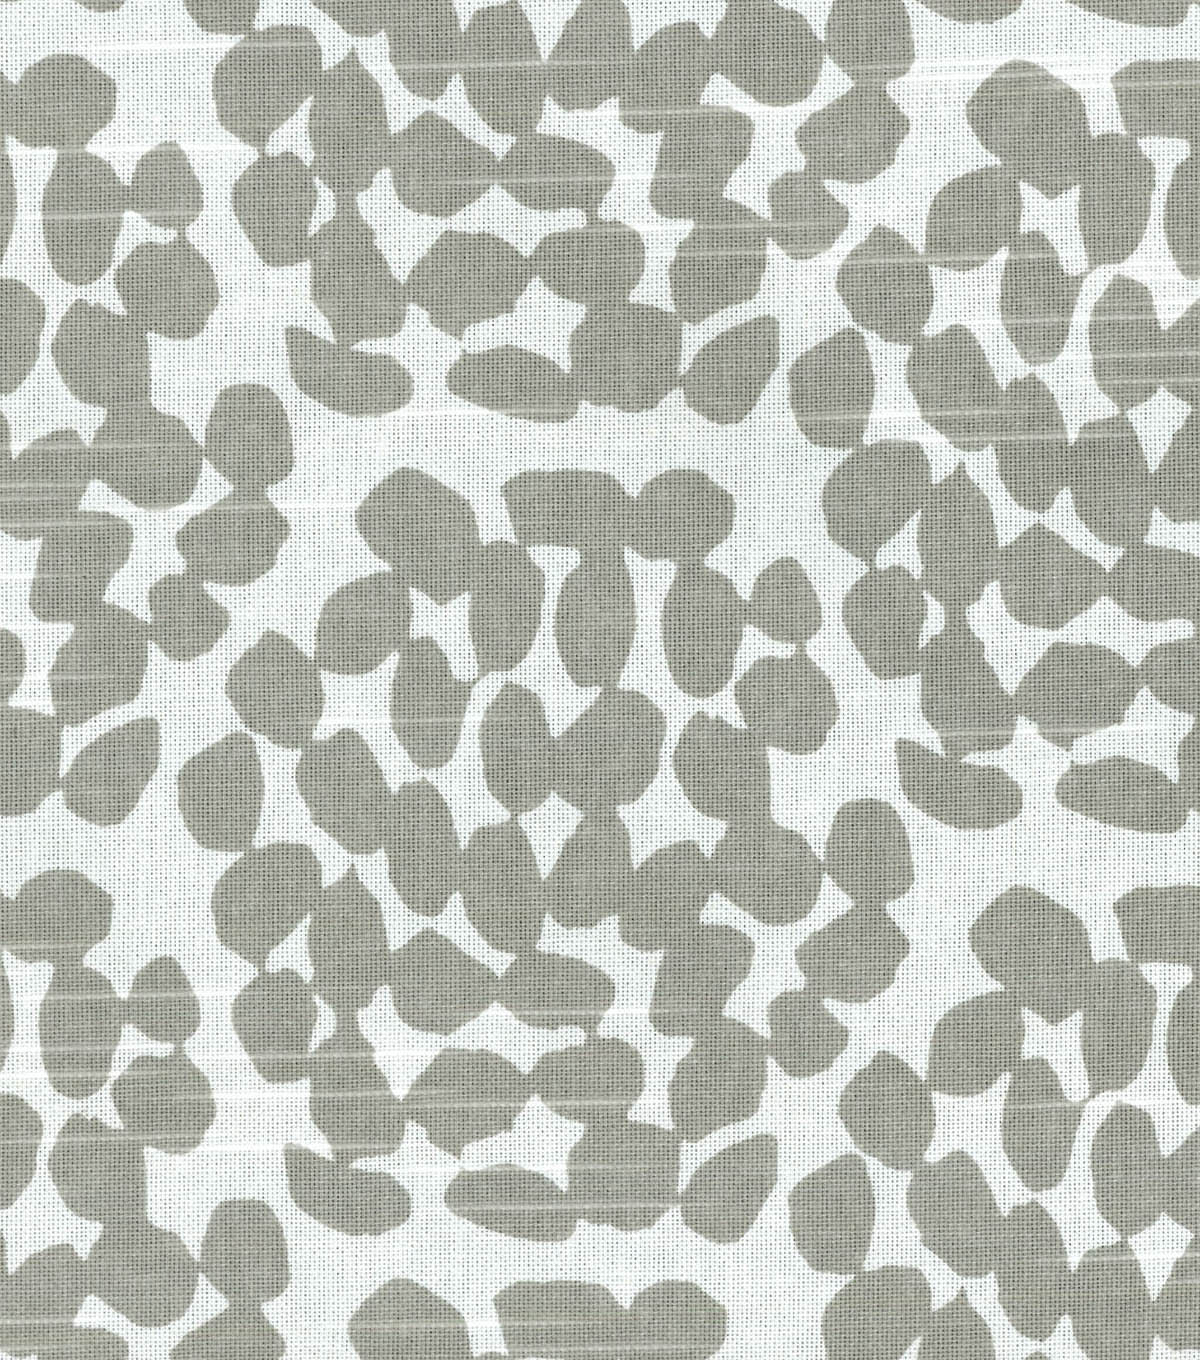 Richloom Studio Multi Purpose Decor Fabric 54\u0022 Catera Grey